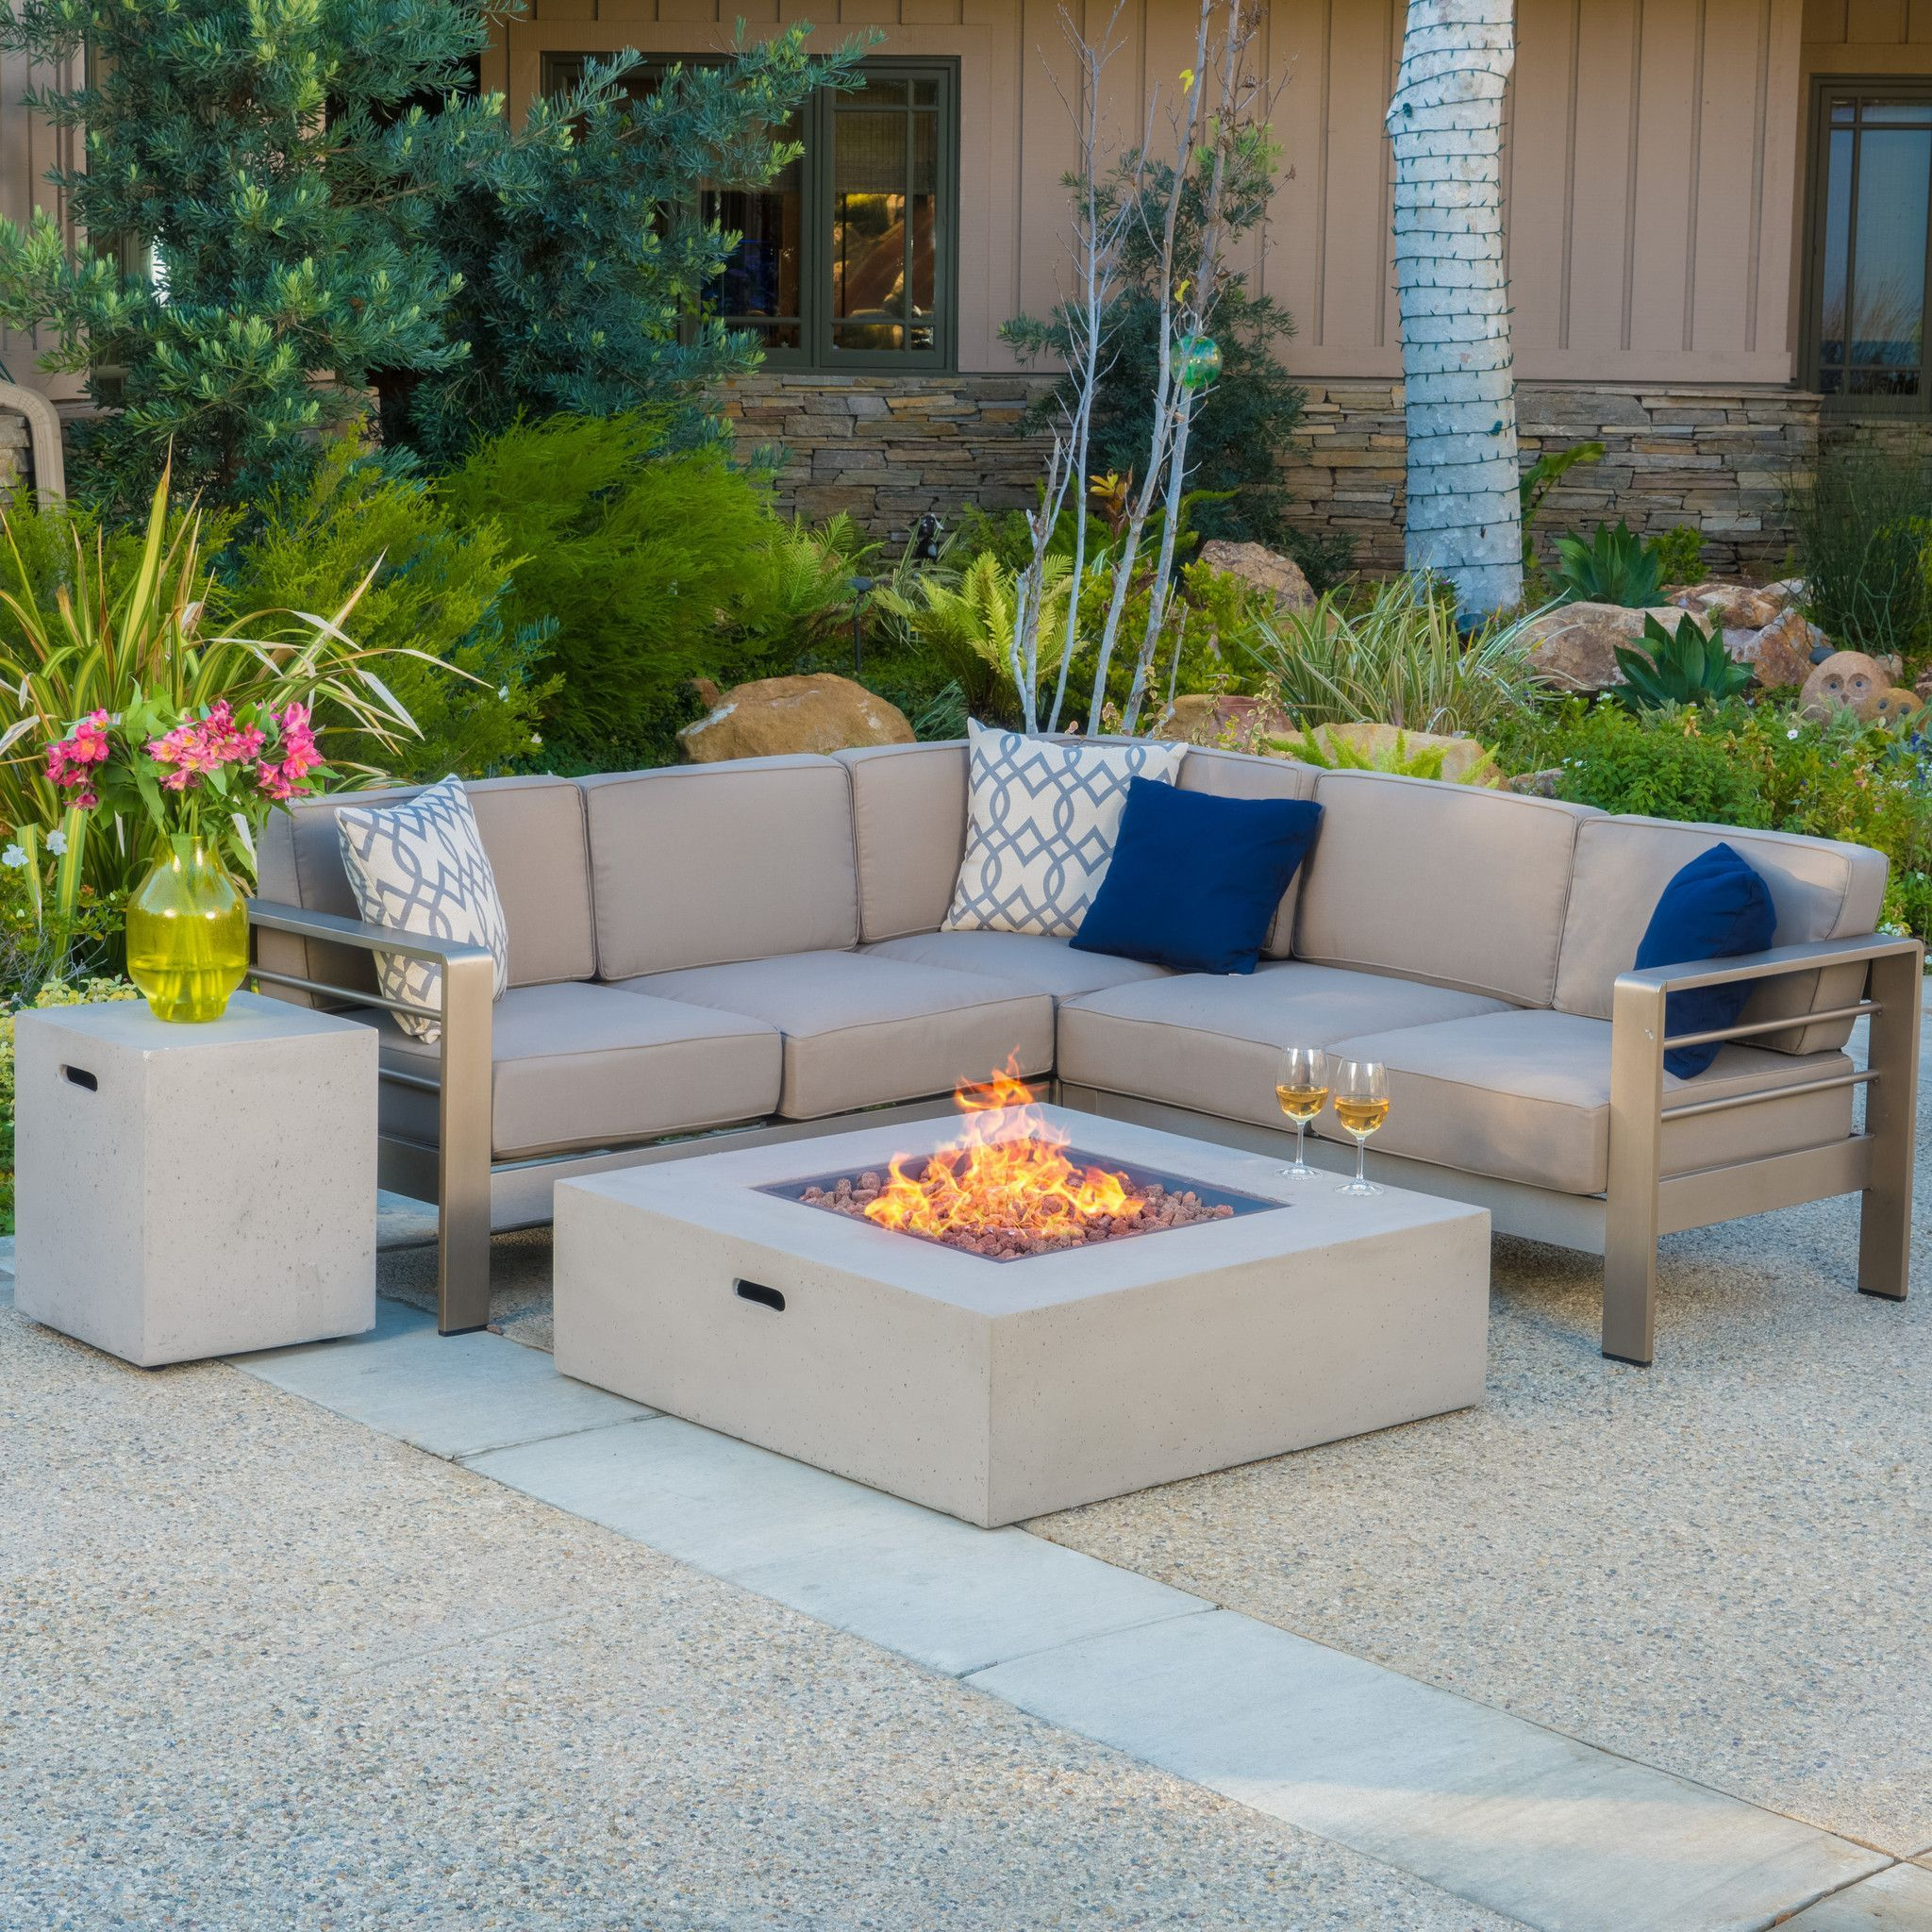 Crested Bay V Shape Outdoor Fire Table Sofa Set Outdoor Fire Table Fire Table Outdoor Fire